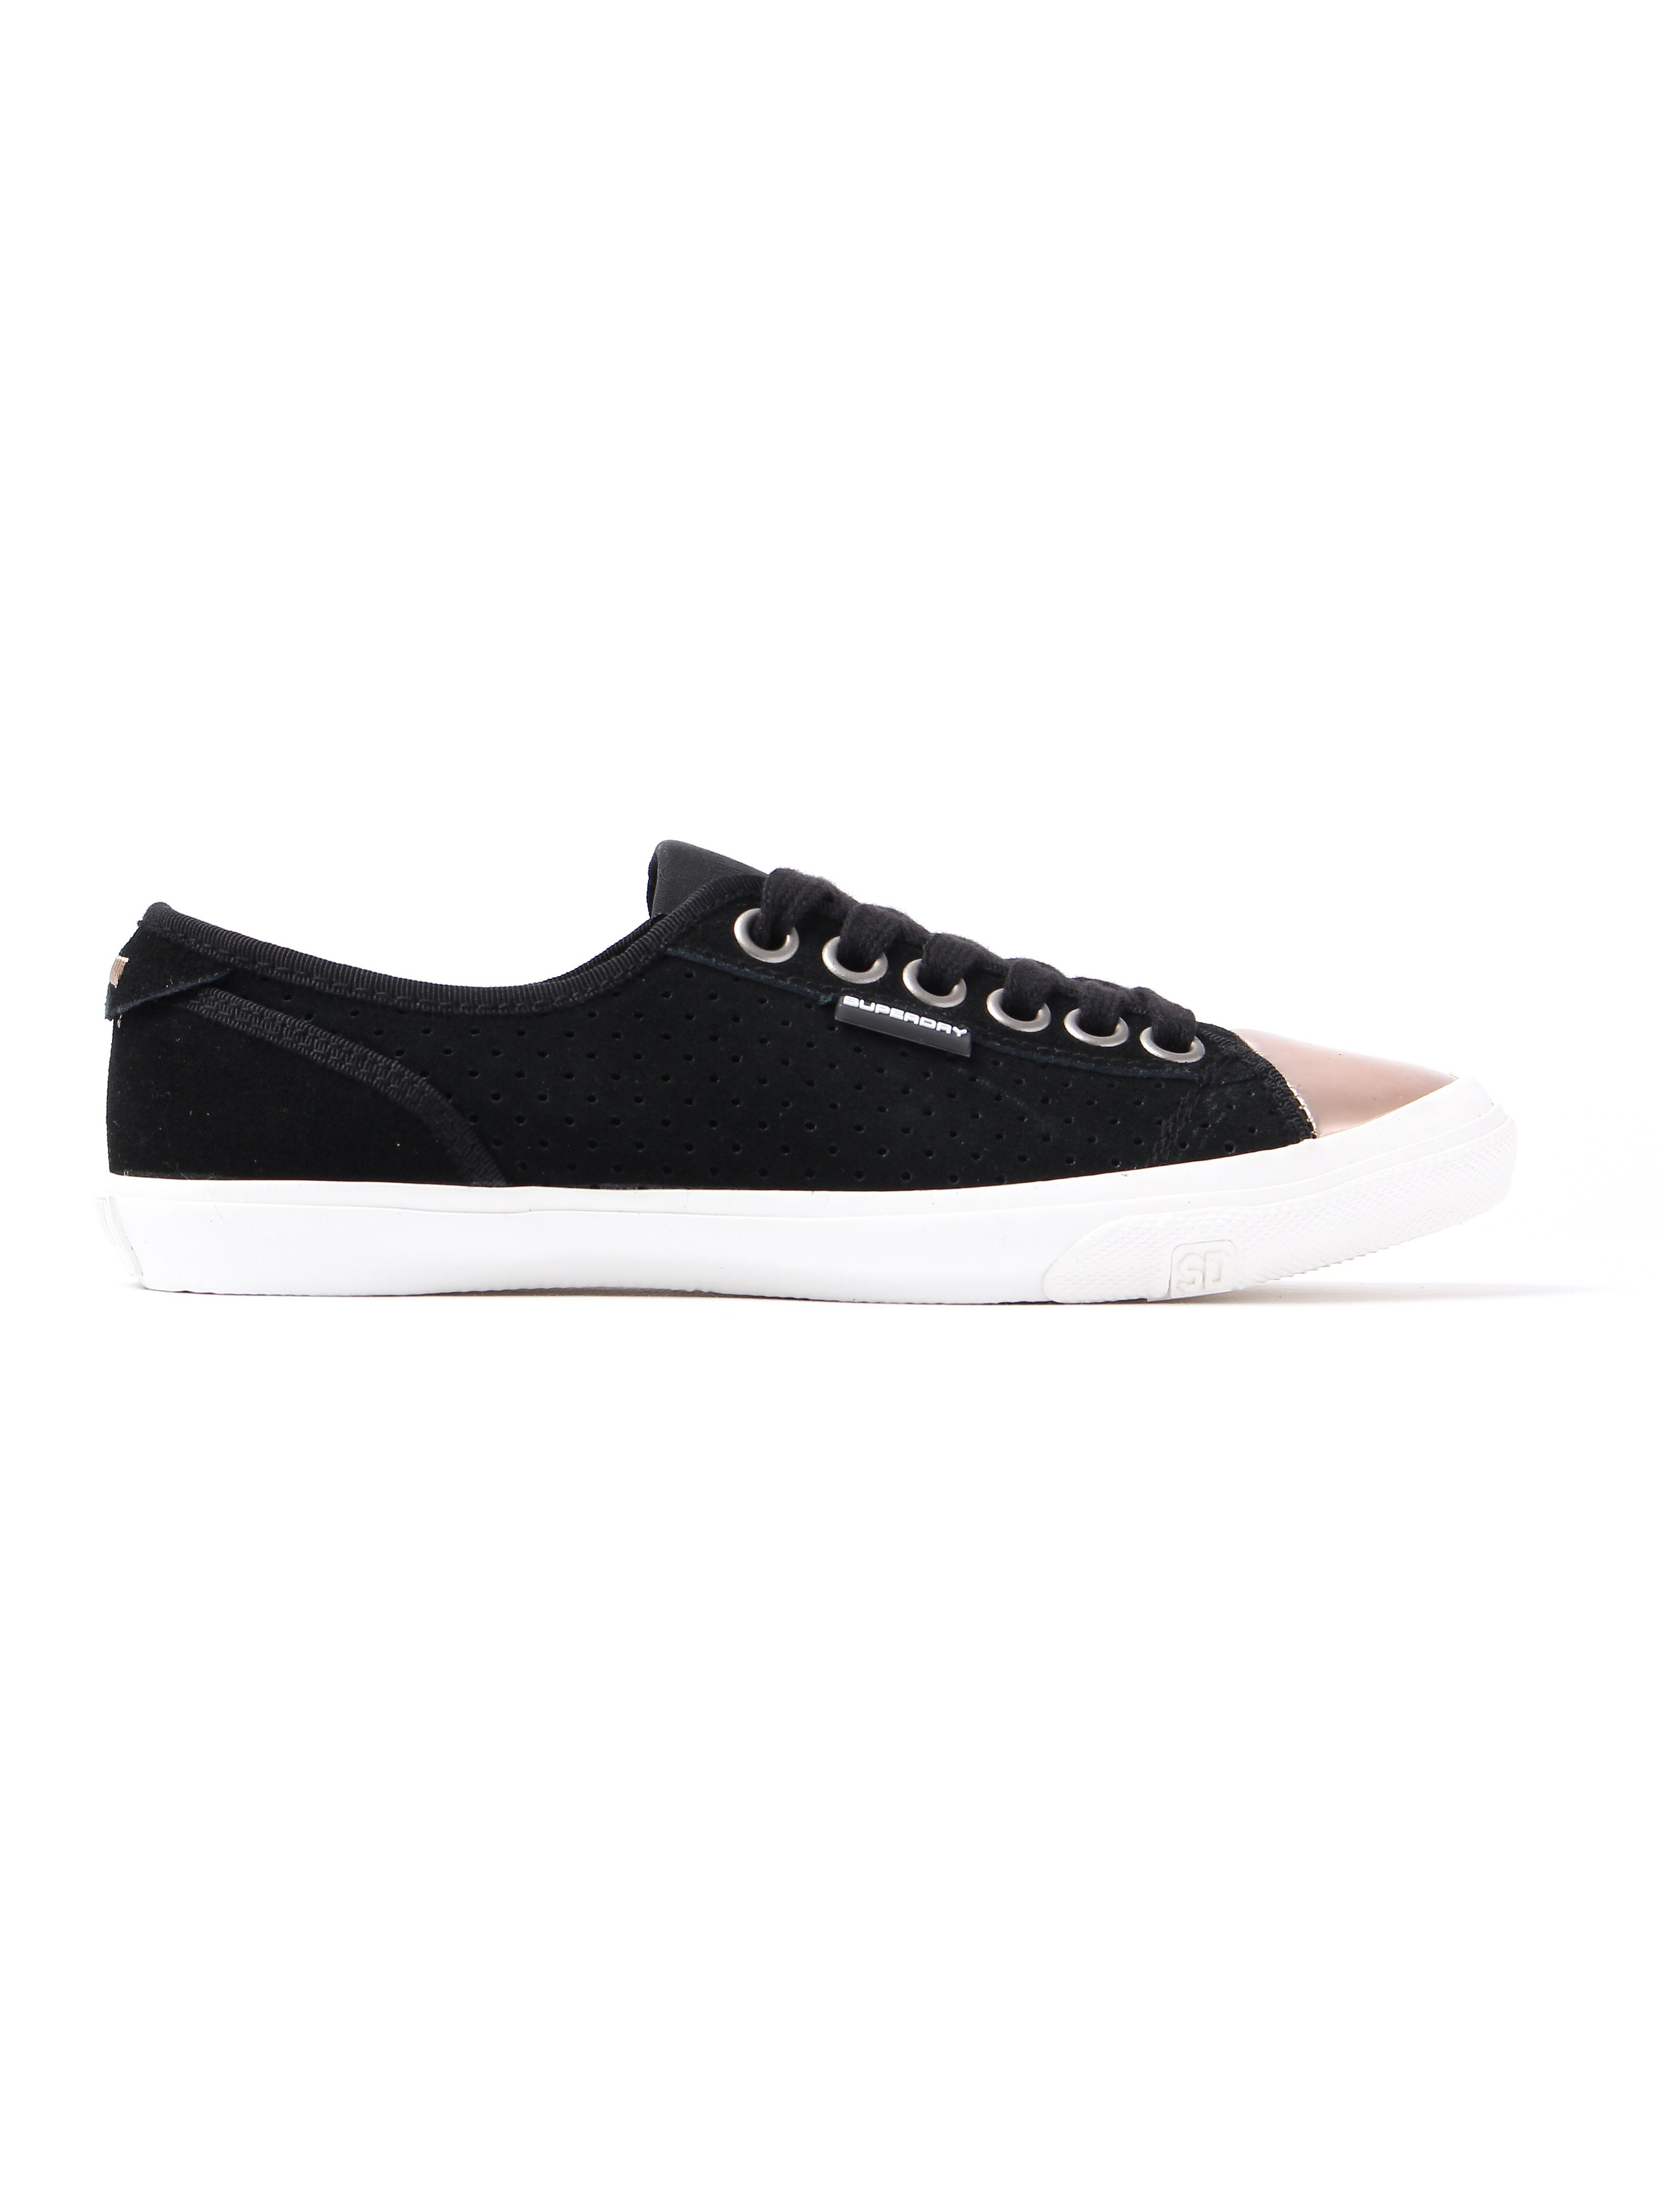 Superdry Women's Low Pro Luxe Perforated Suede Trainers - Black